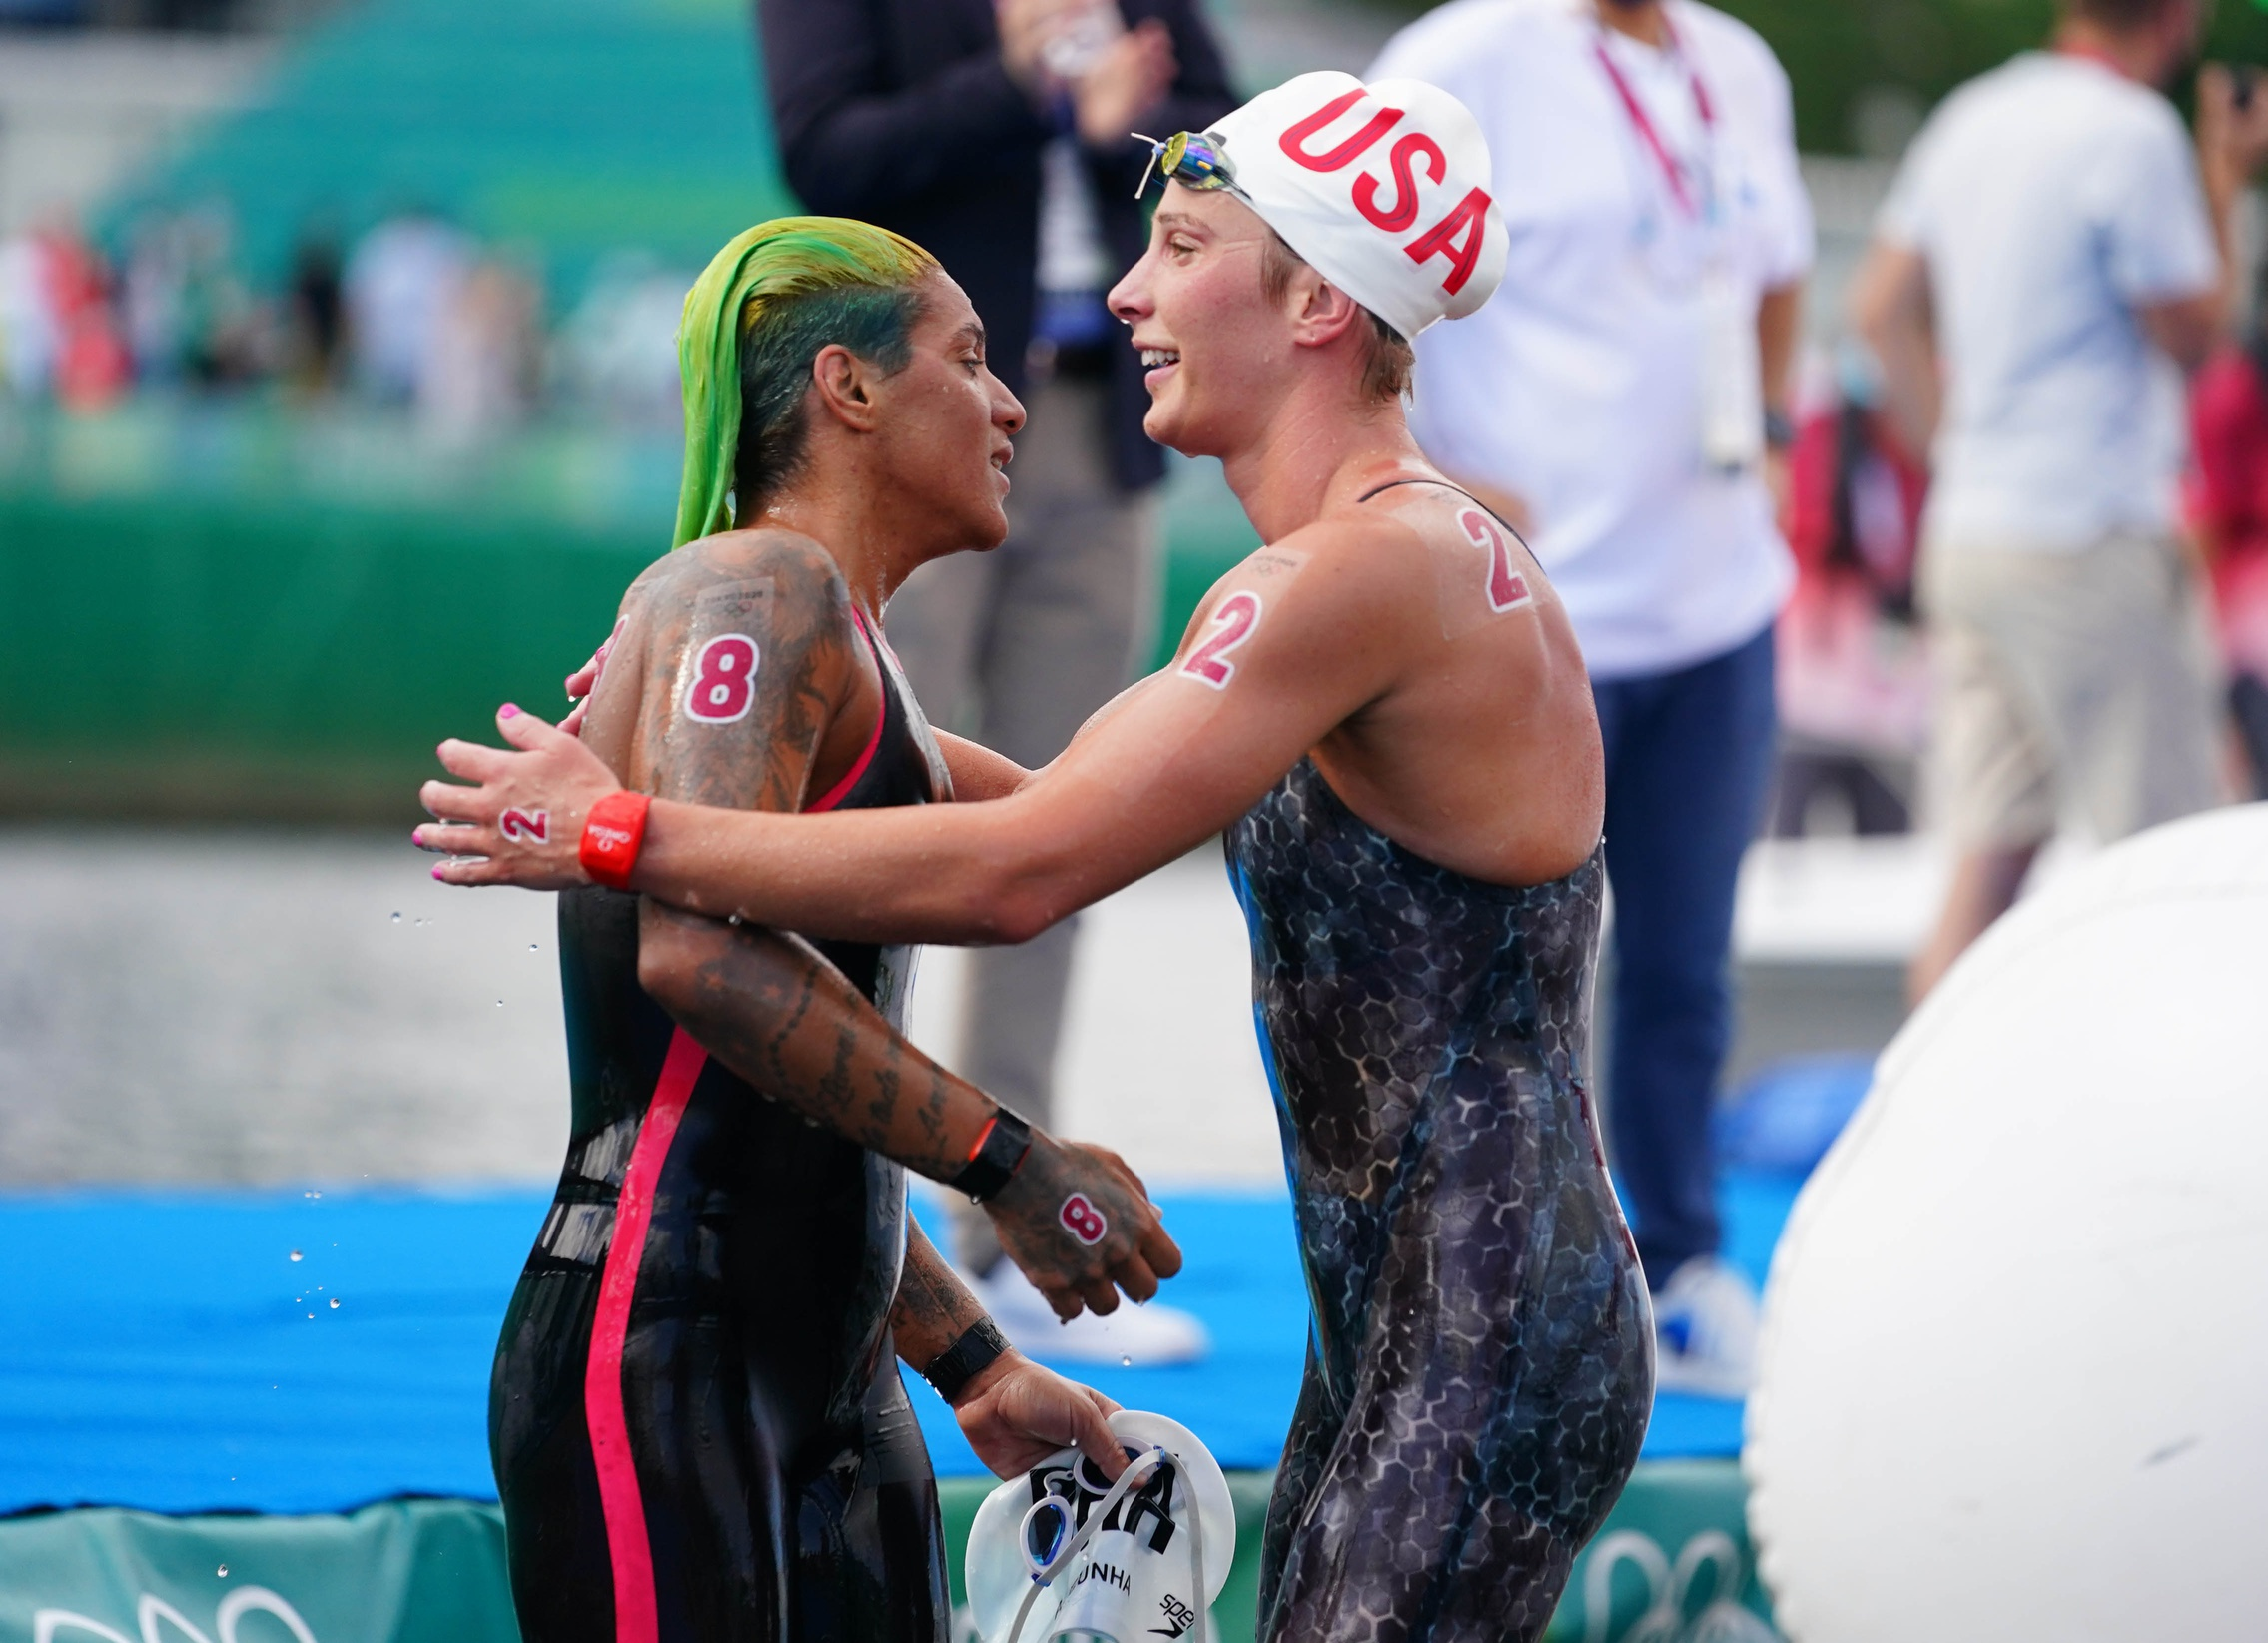 Aug 4, 2021; Tokyo, Japan; Gold medalist Ana Marcela Cunha (BRA) reacts with Ashley Twichell (USA) after winning the women's 10km open water swimming competition during the Tokyo 2020 Olympic Summer Games at Odaiba Marine Park. Mandatory Credit: Kareem Elgazzar-USA TODAY Sports